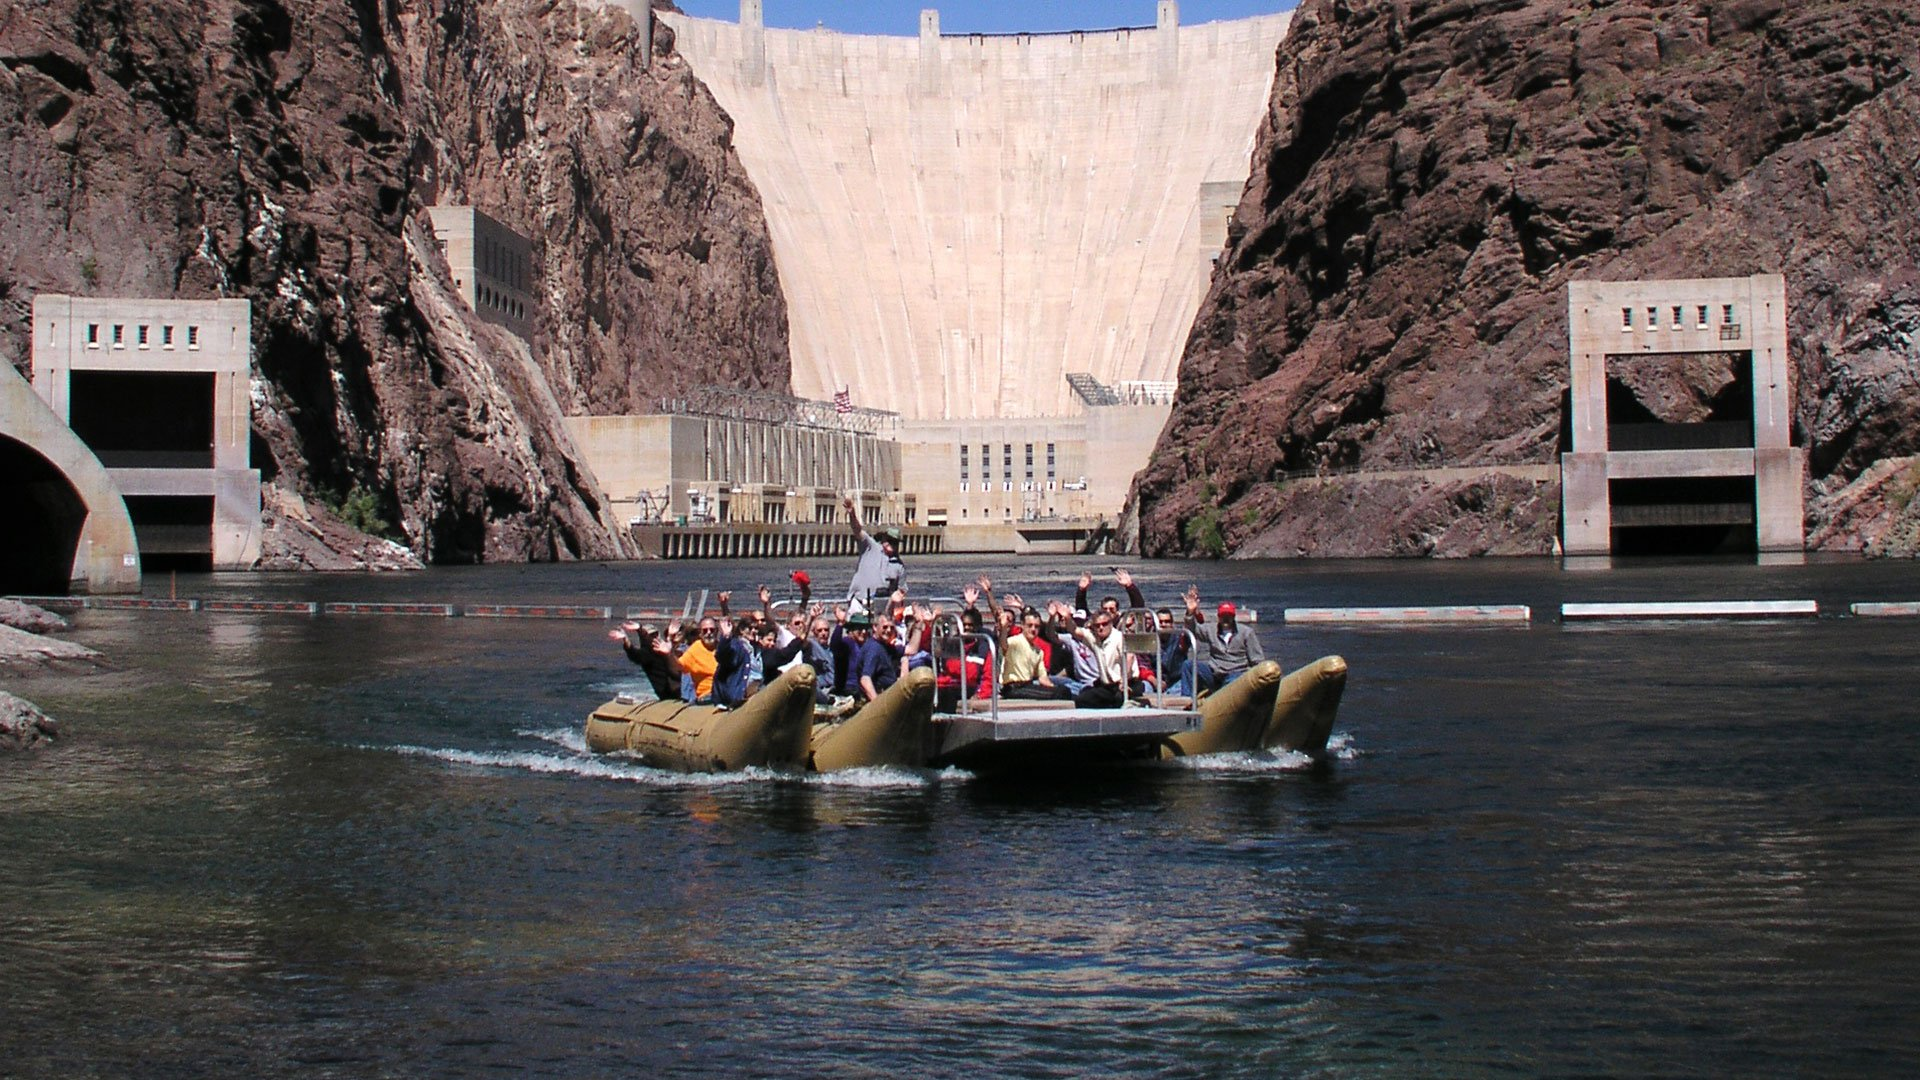 Passengers on a river raft with the Hoover Dam in the background